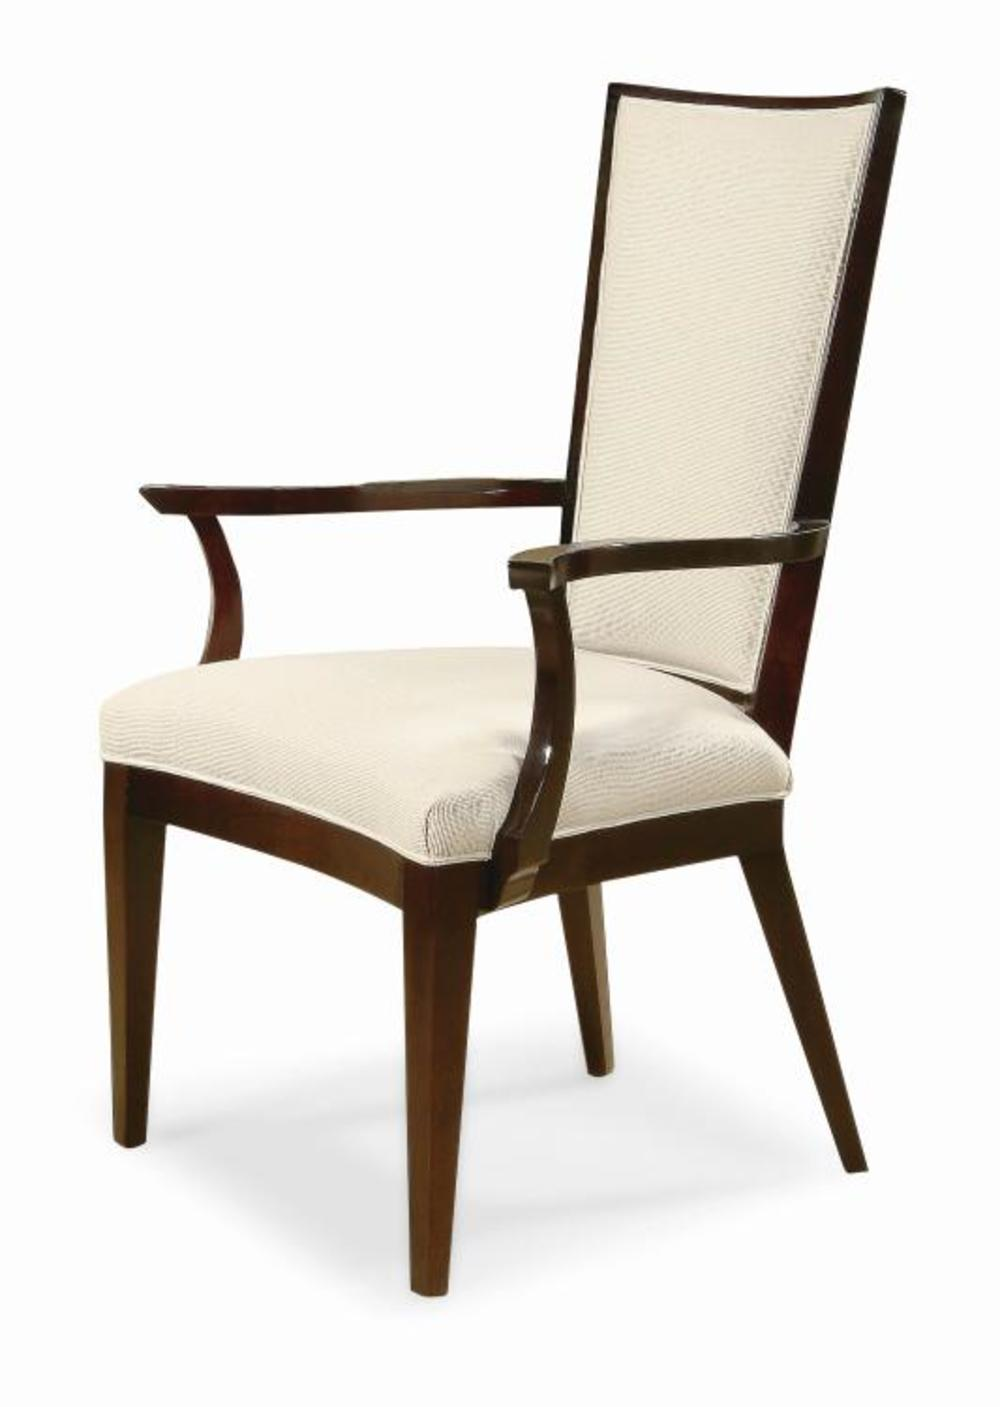 Century Furniture - Edison Upholstered Arm Chair